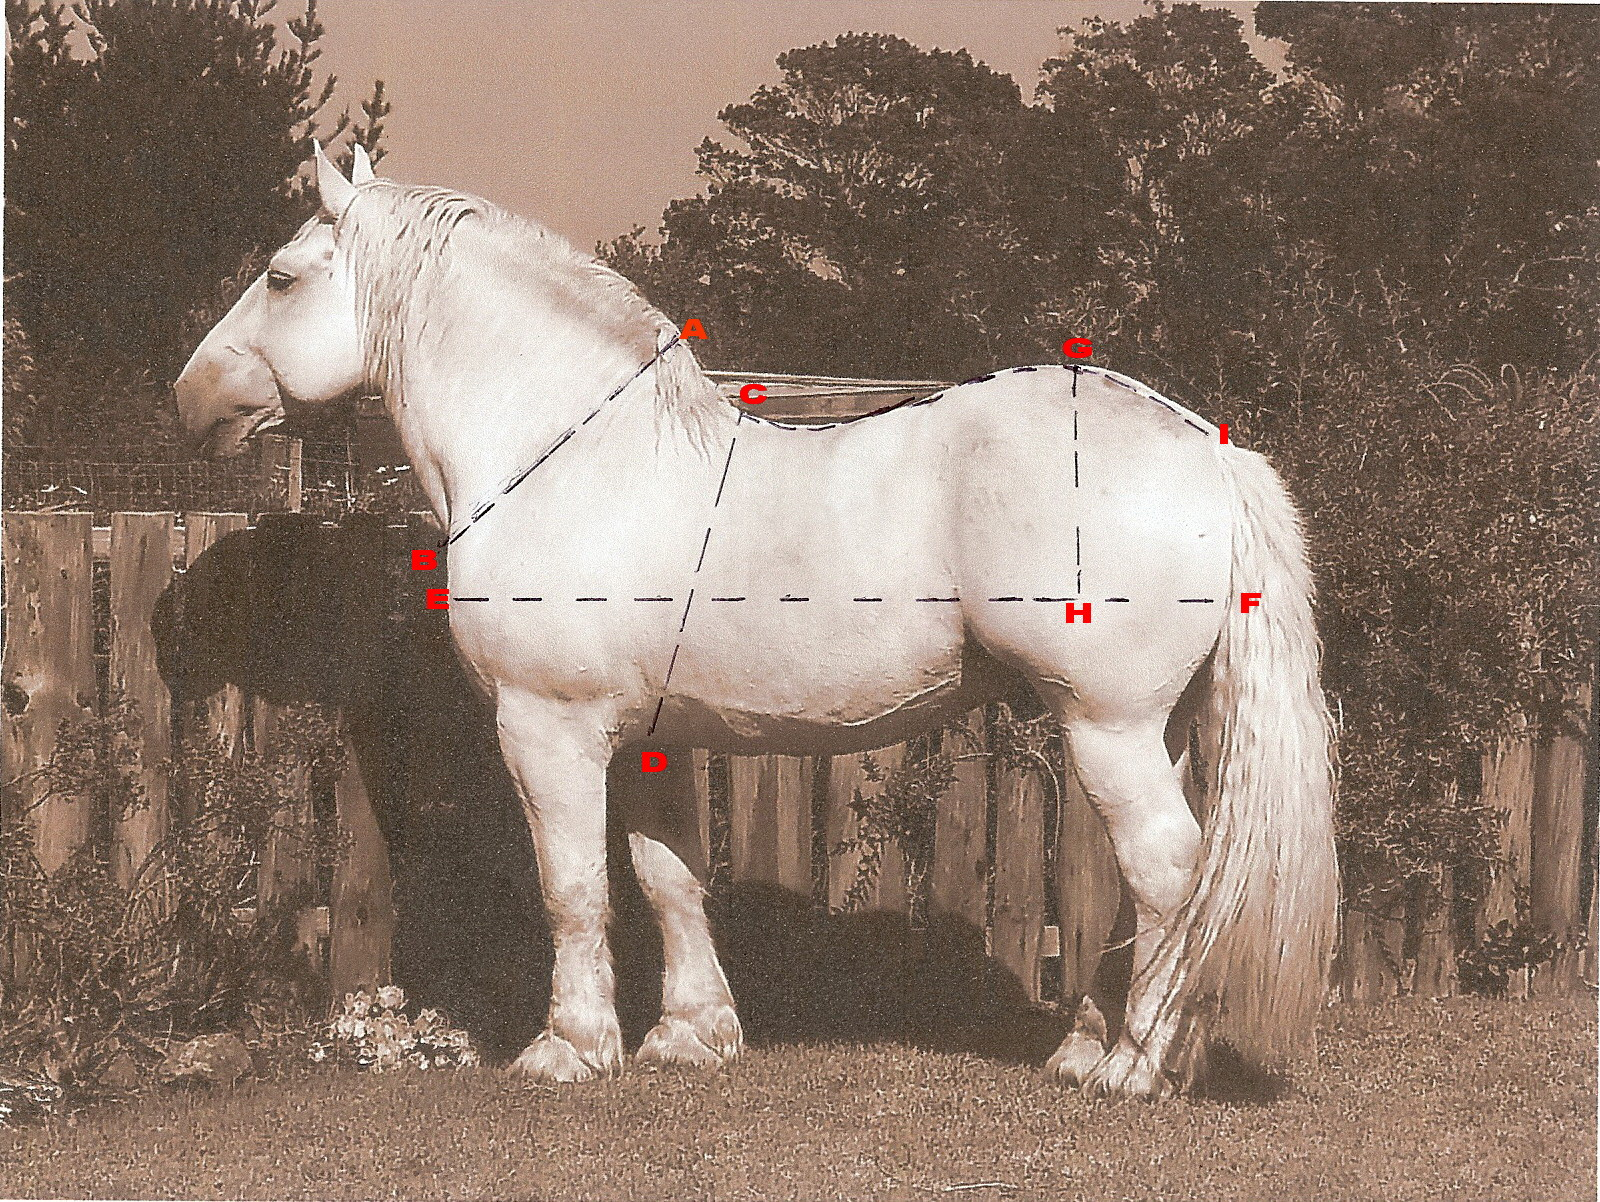 How to measure a horse to harness